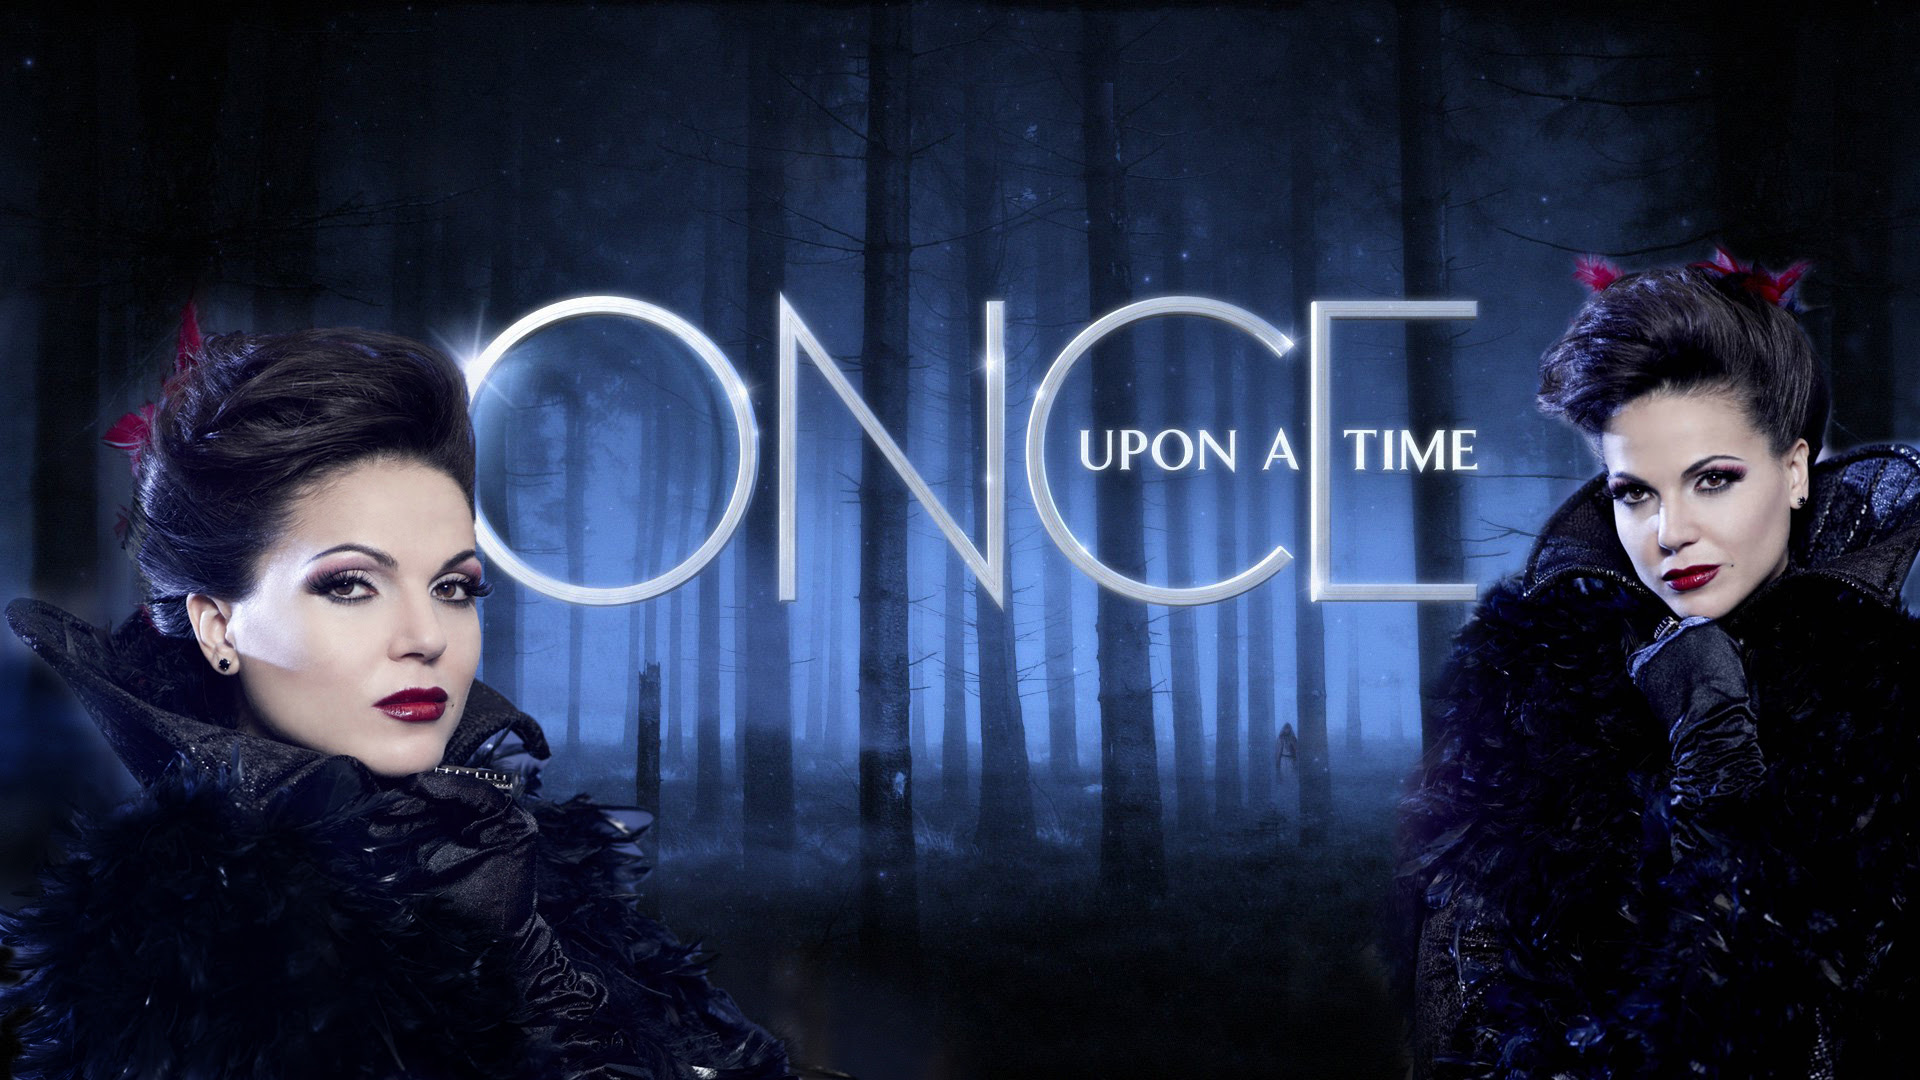 Evil Queen Once Upon A Time Once Upon A Time Wallpaper